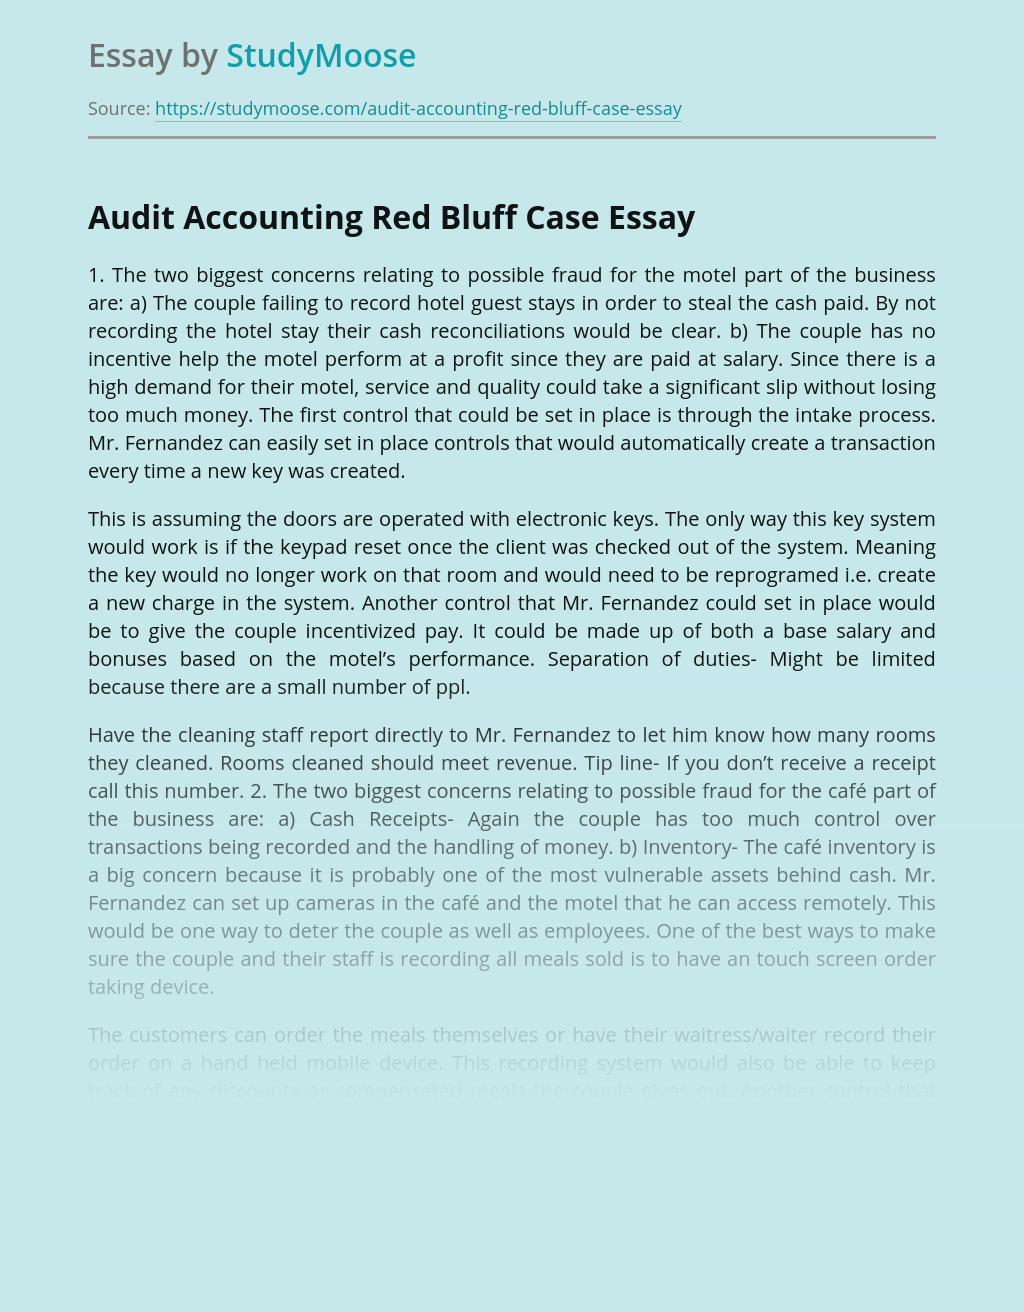 Audit Accounting Red Bluff Case